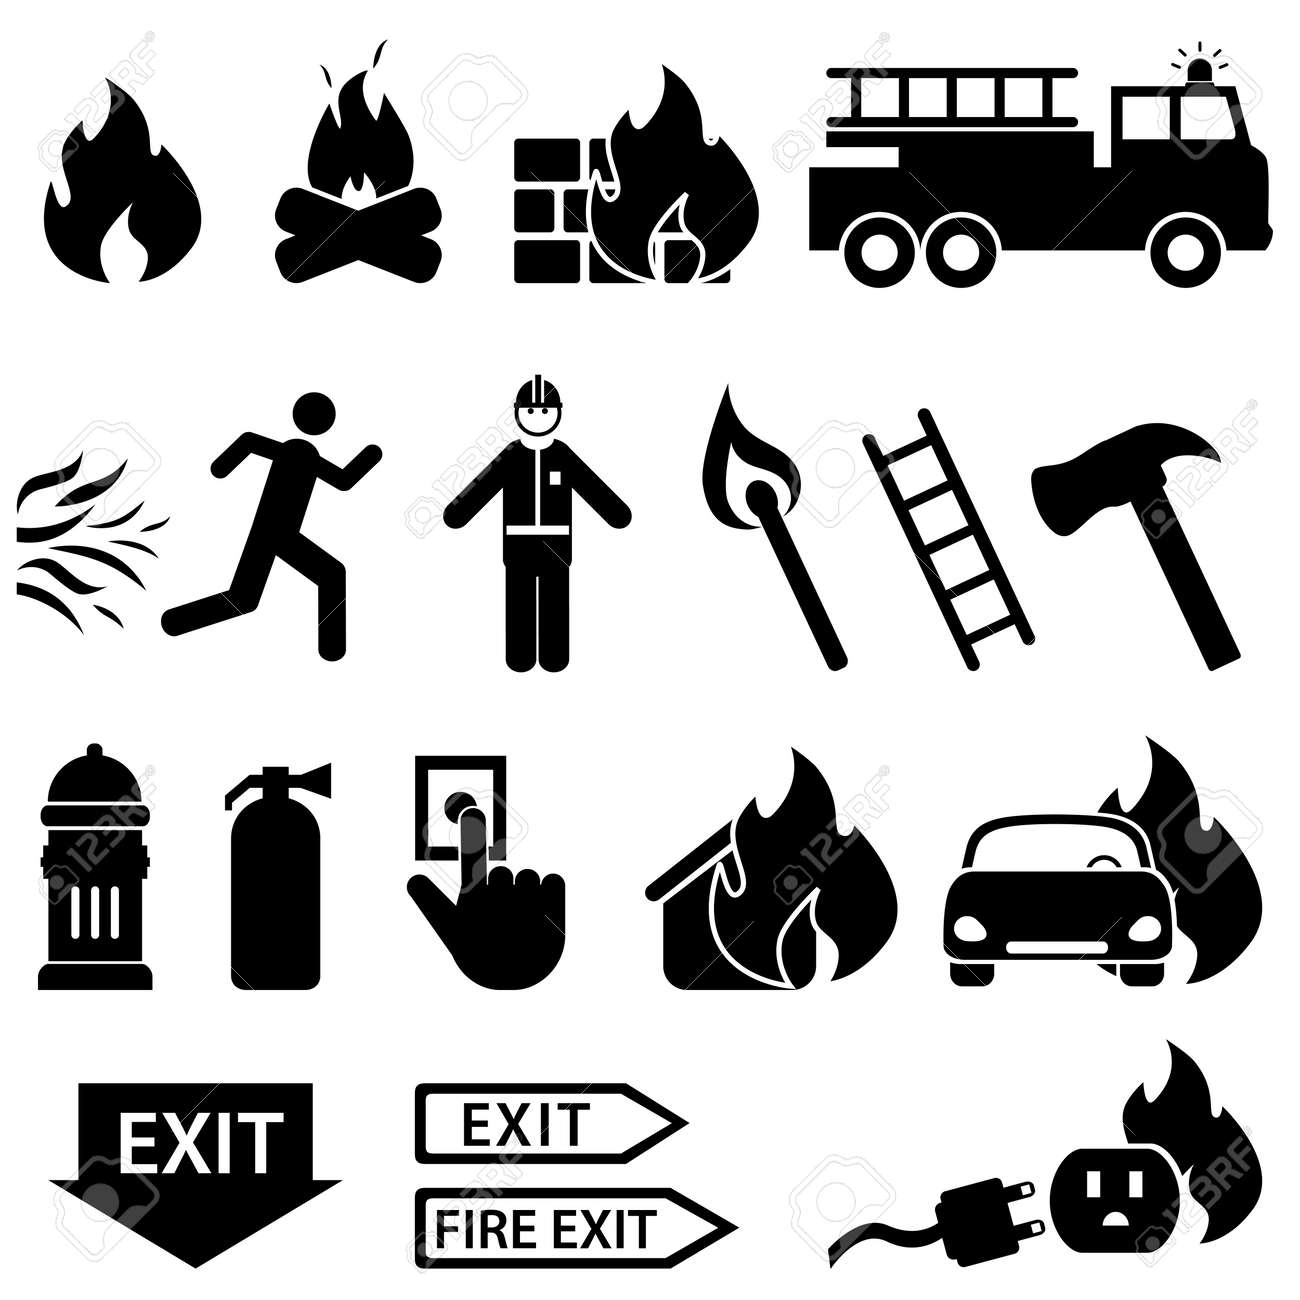 Fire related icon set in black - 23019487